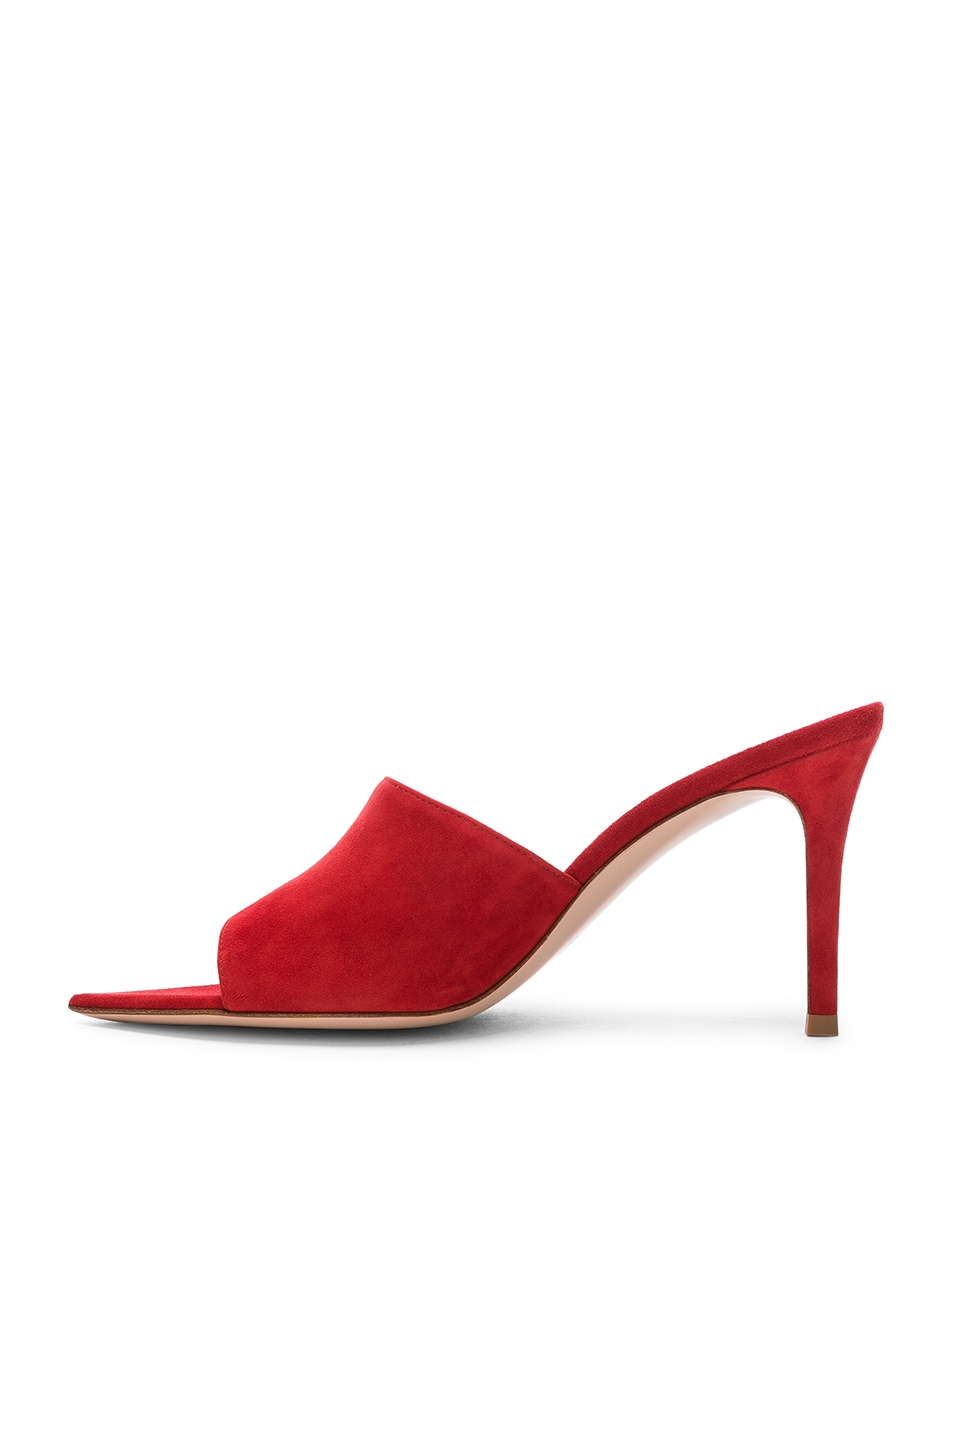 Image 5 of Gianvito Rossi Alise Mules in Tabasco Red